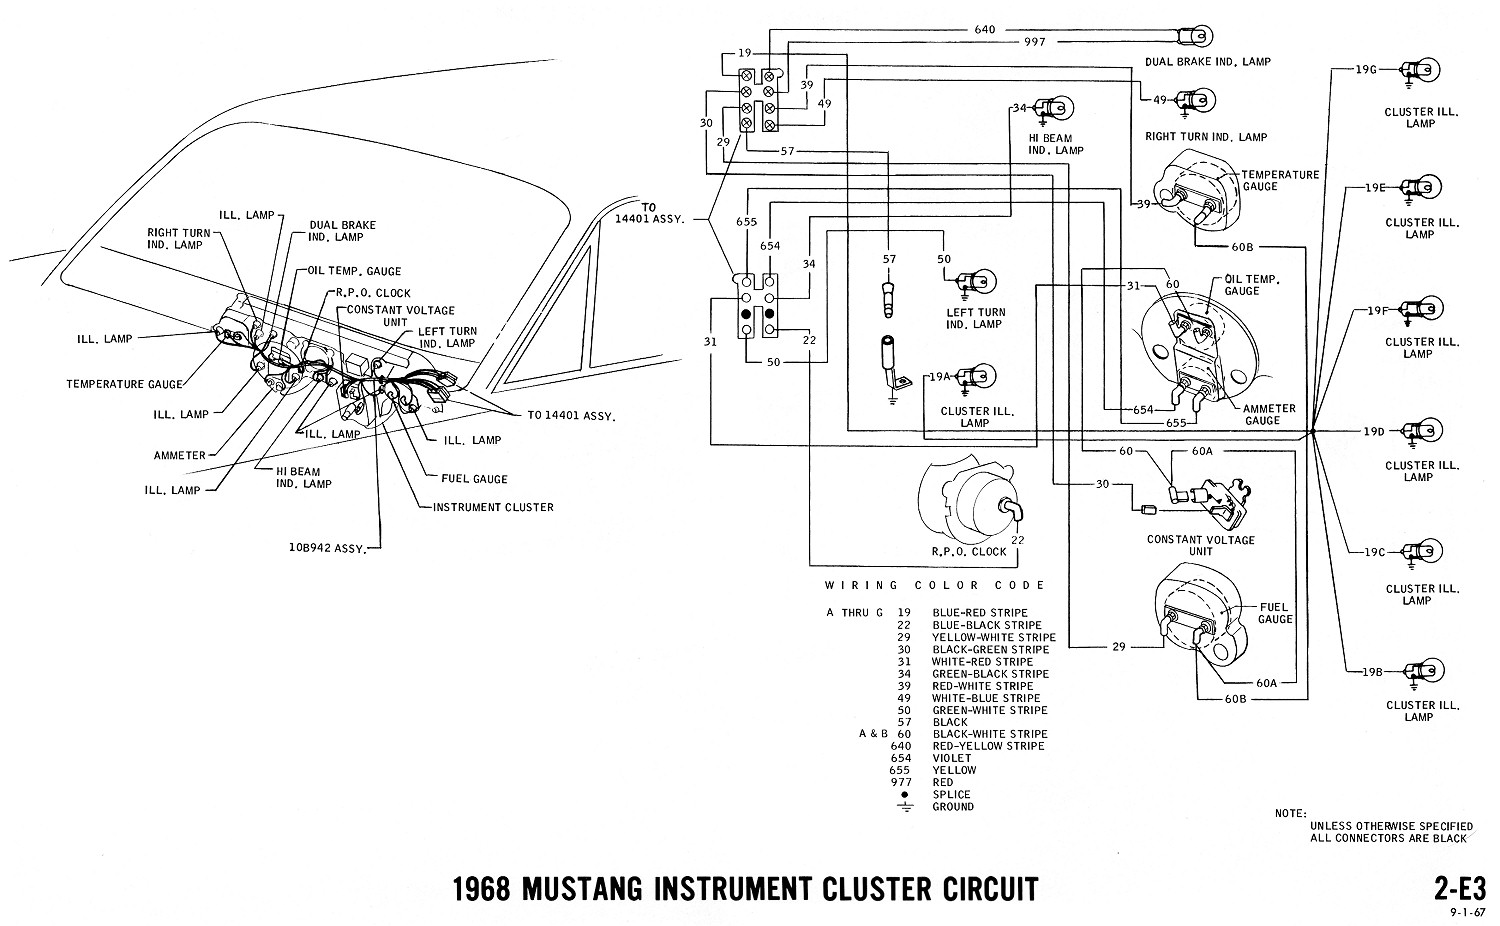 1968 mustang instrument cluster wiring diagram 1968 1968 mustang wiring diagrams evolving software